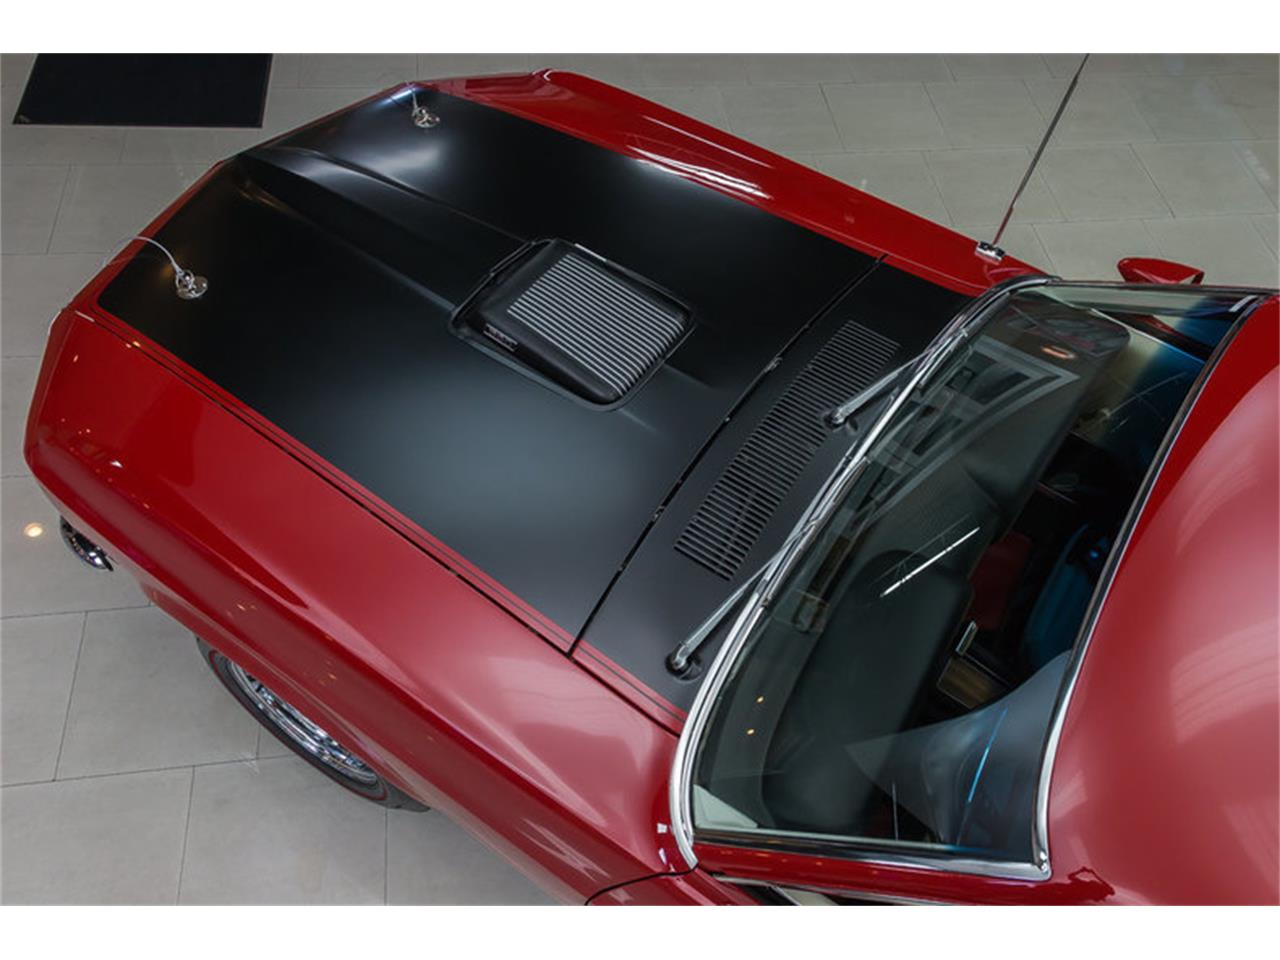 Large Picture of Classic 1969 Ford Mustang Mach 1 S Code located in Plymouth Michigan - $59,900.00 - IS3G